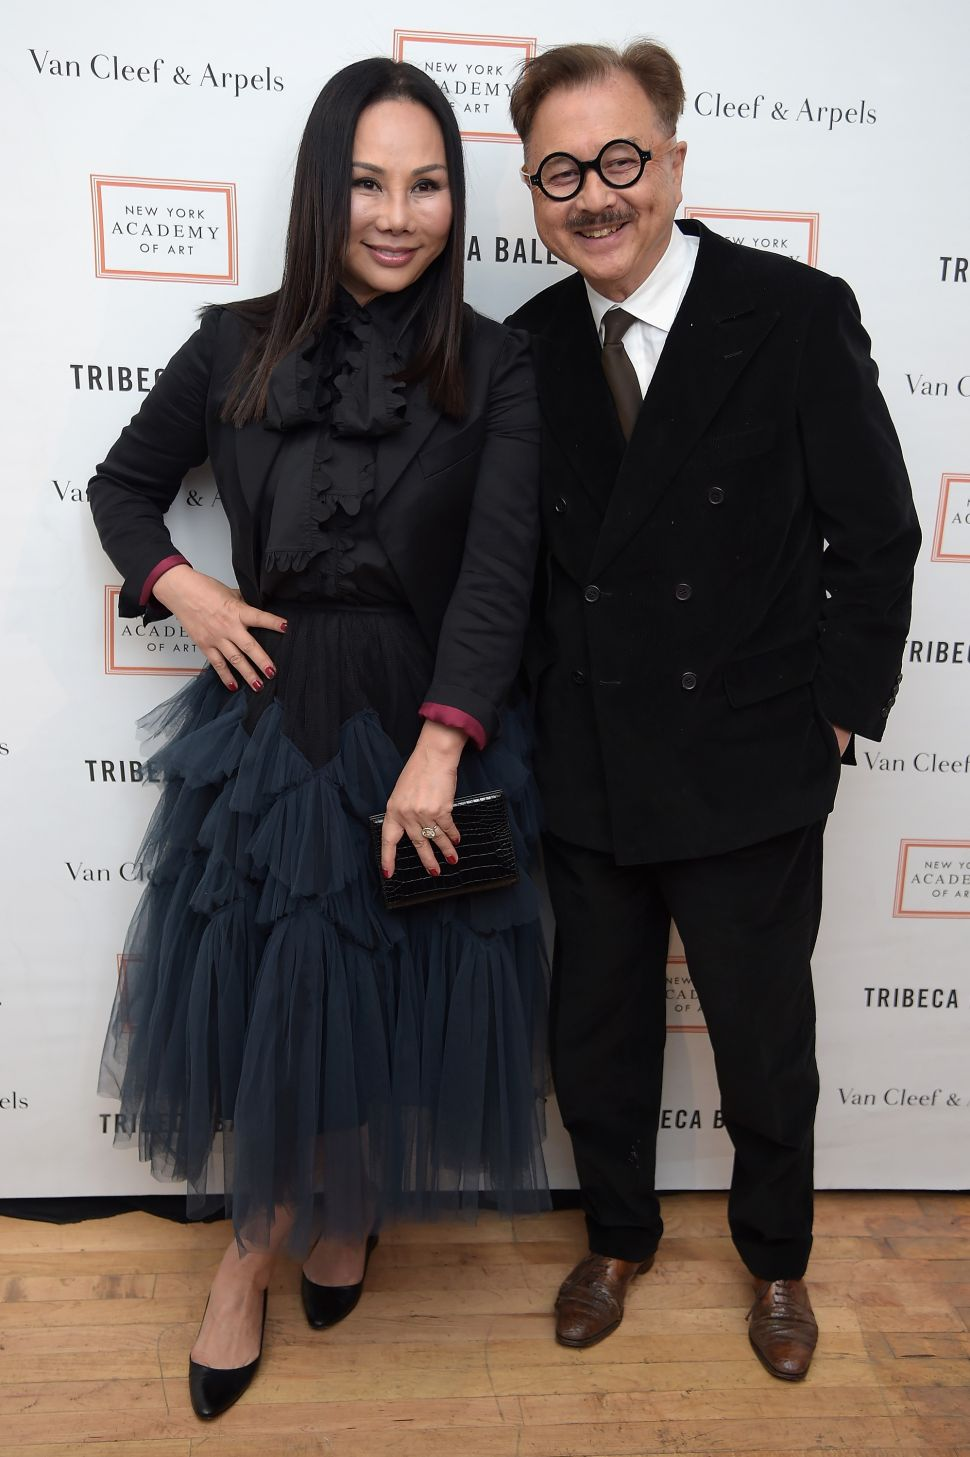 Michael Chow and Eva Chun Chow Just Bought a $5.77M Penthouse